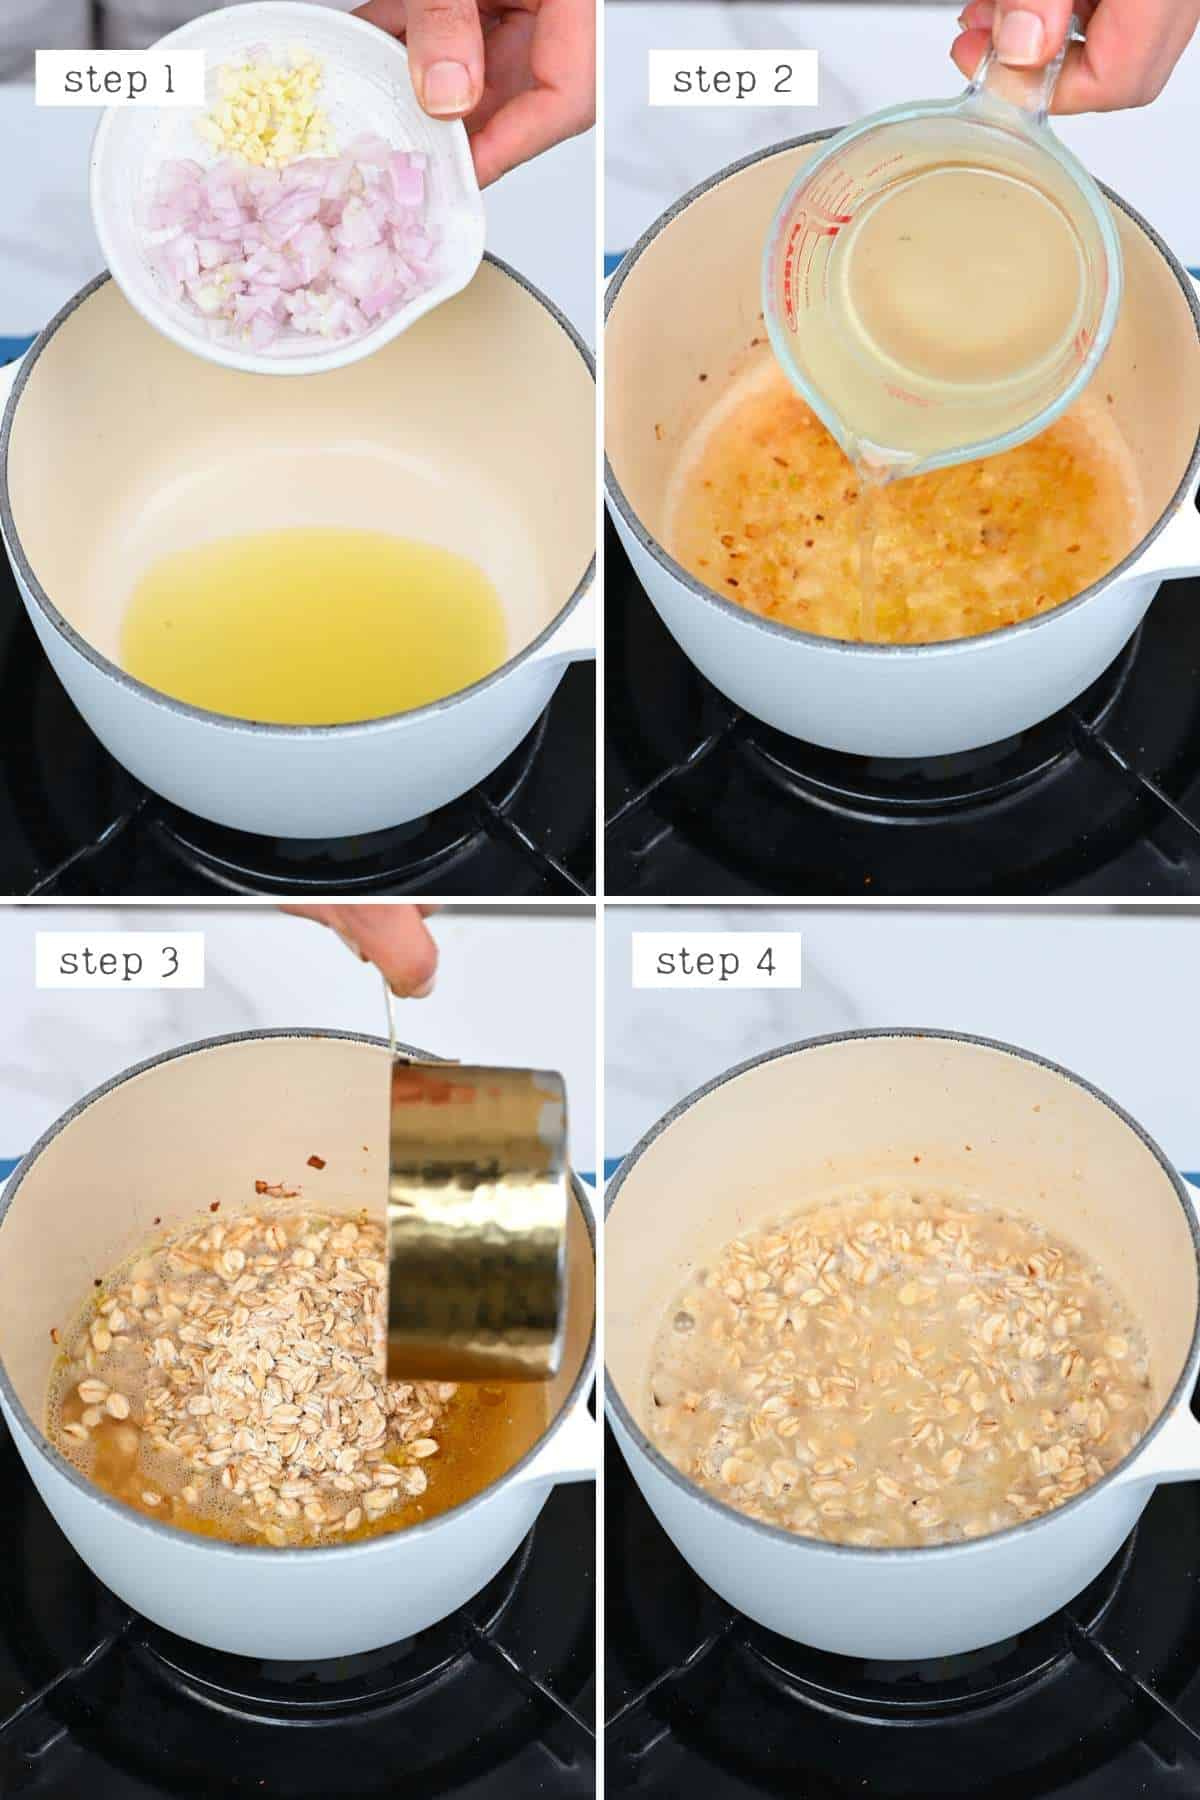 Steps for cooking savory oats